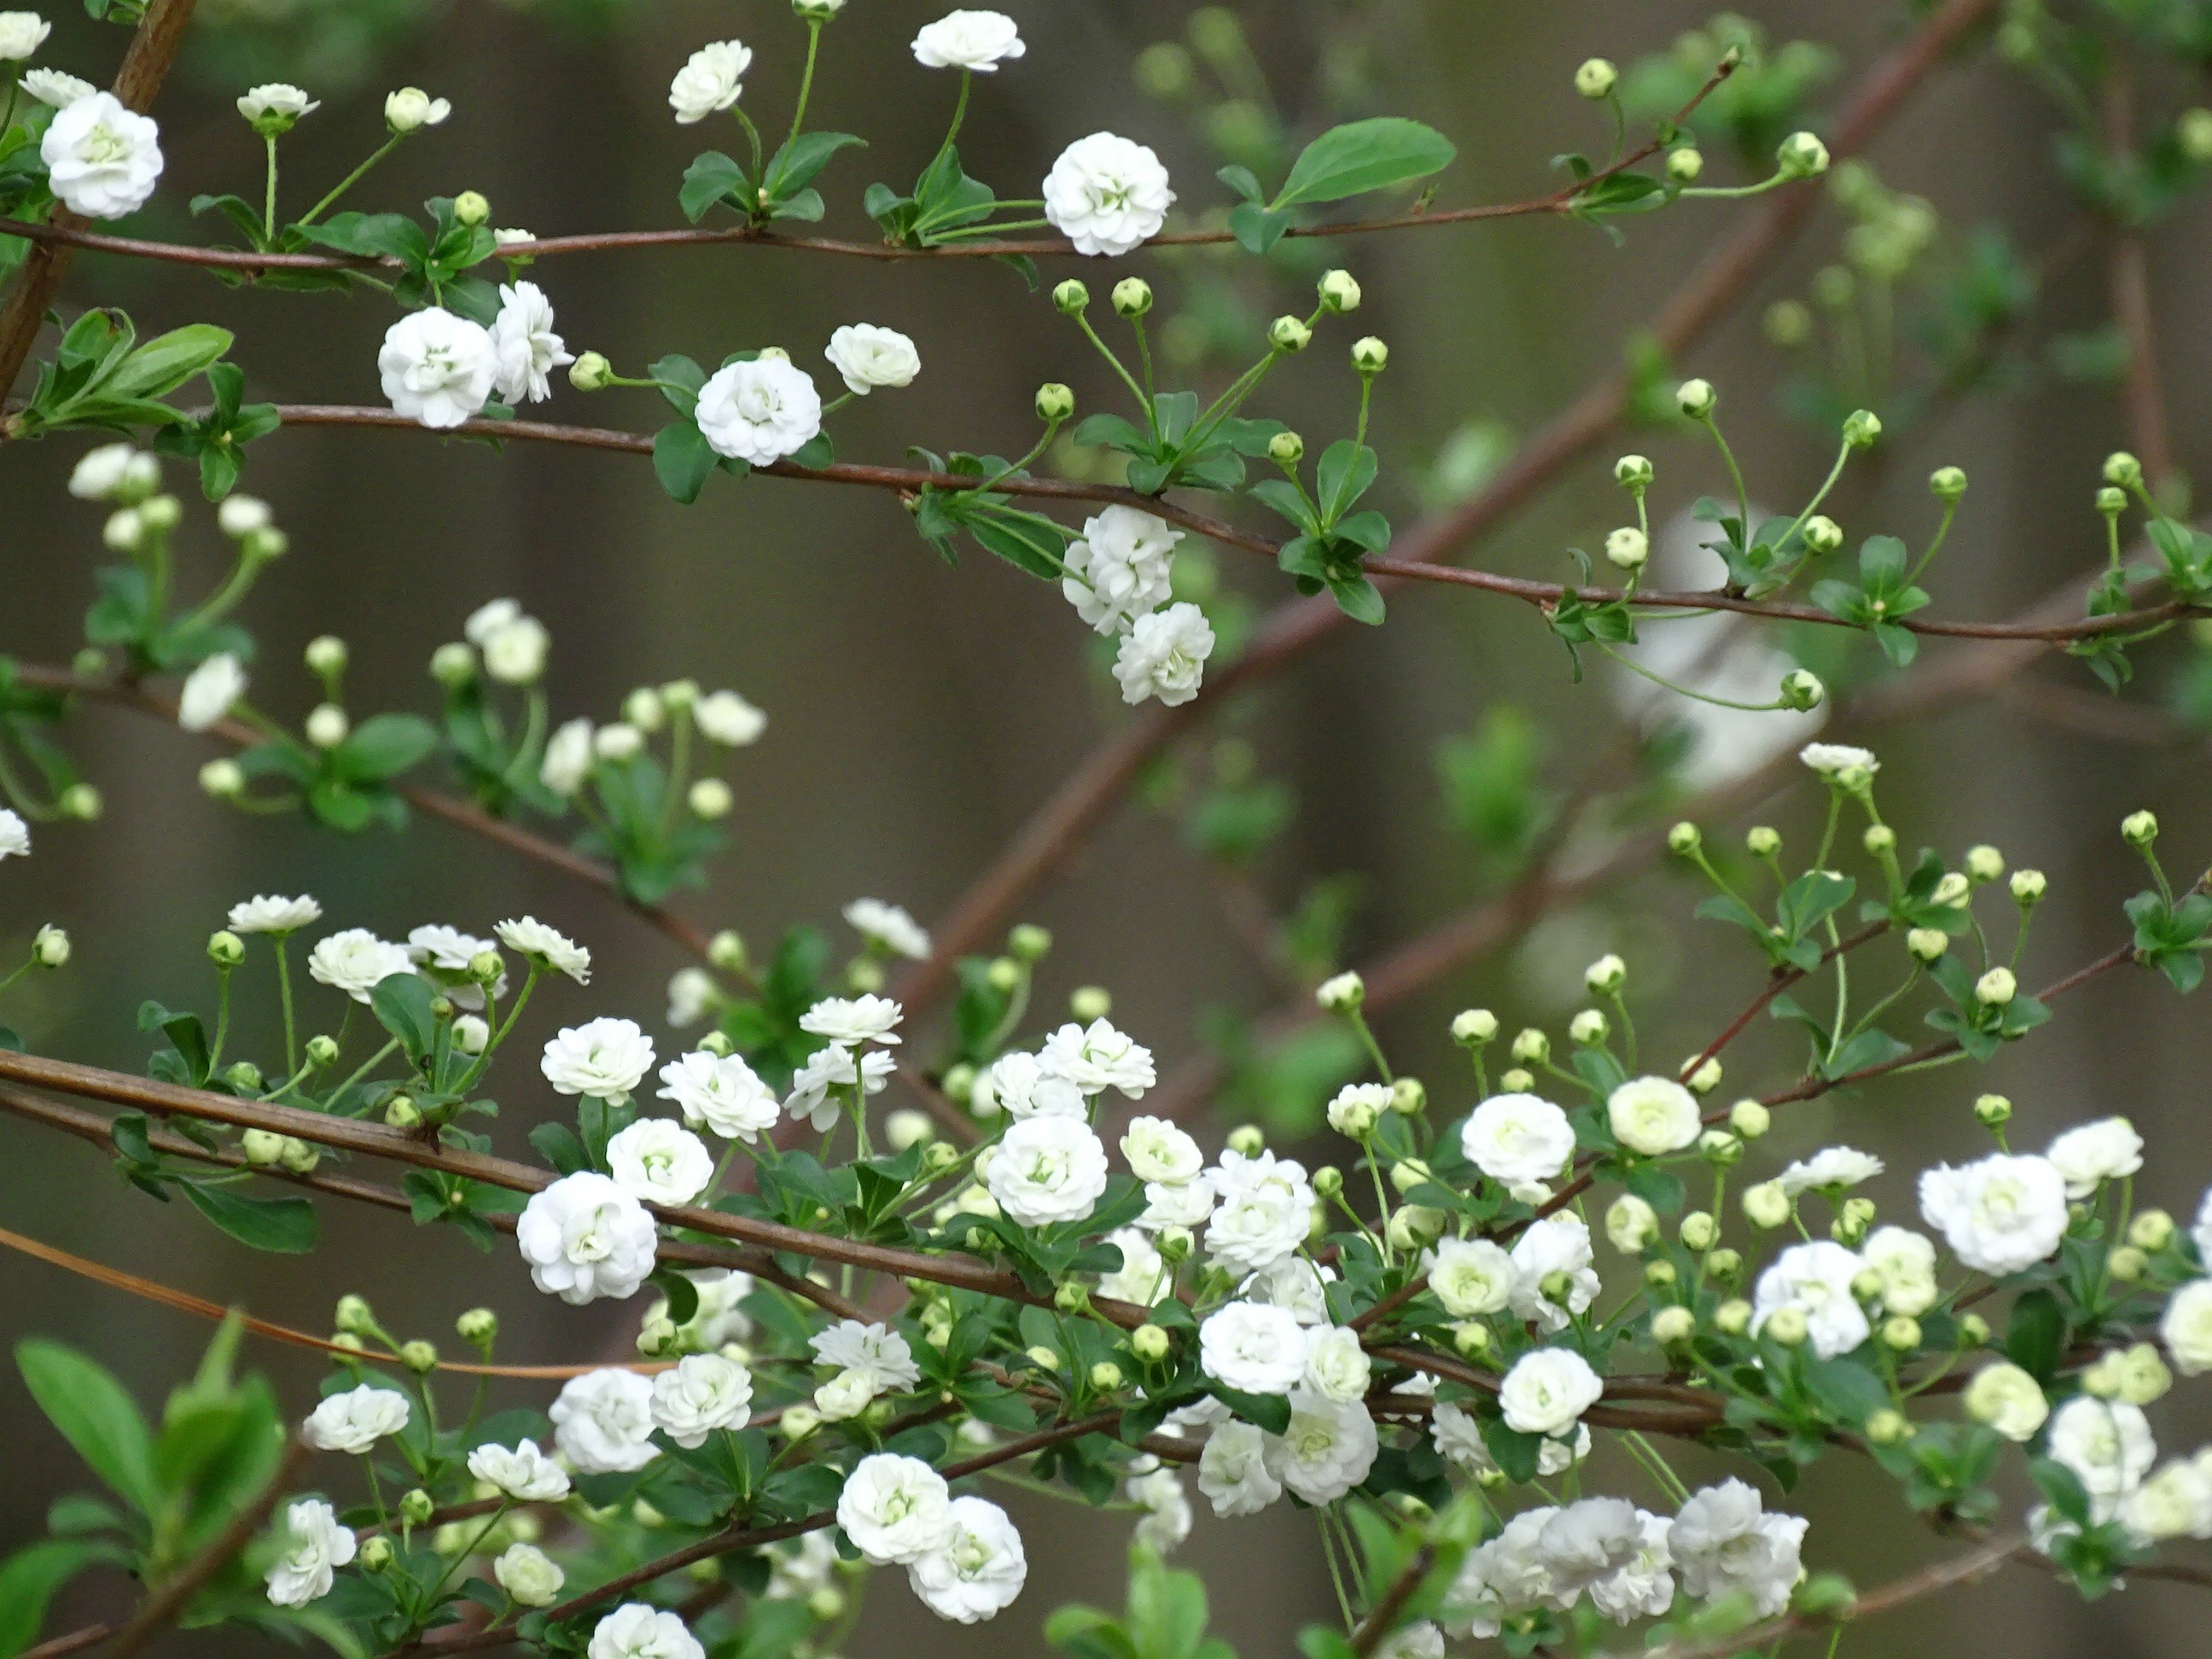 White Flowering Bush Walking On A Country Road